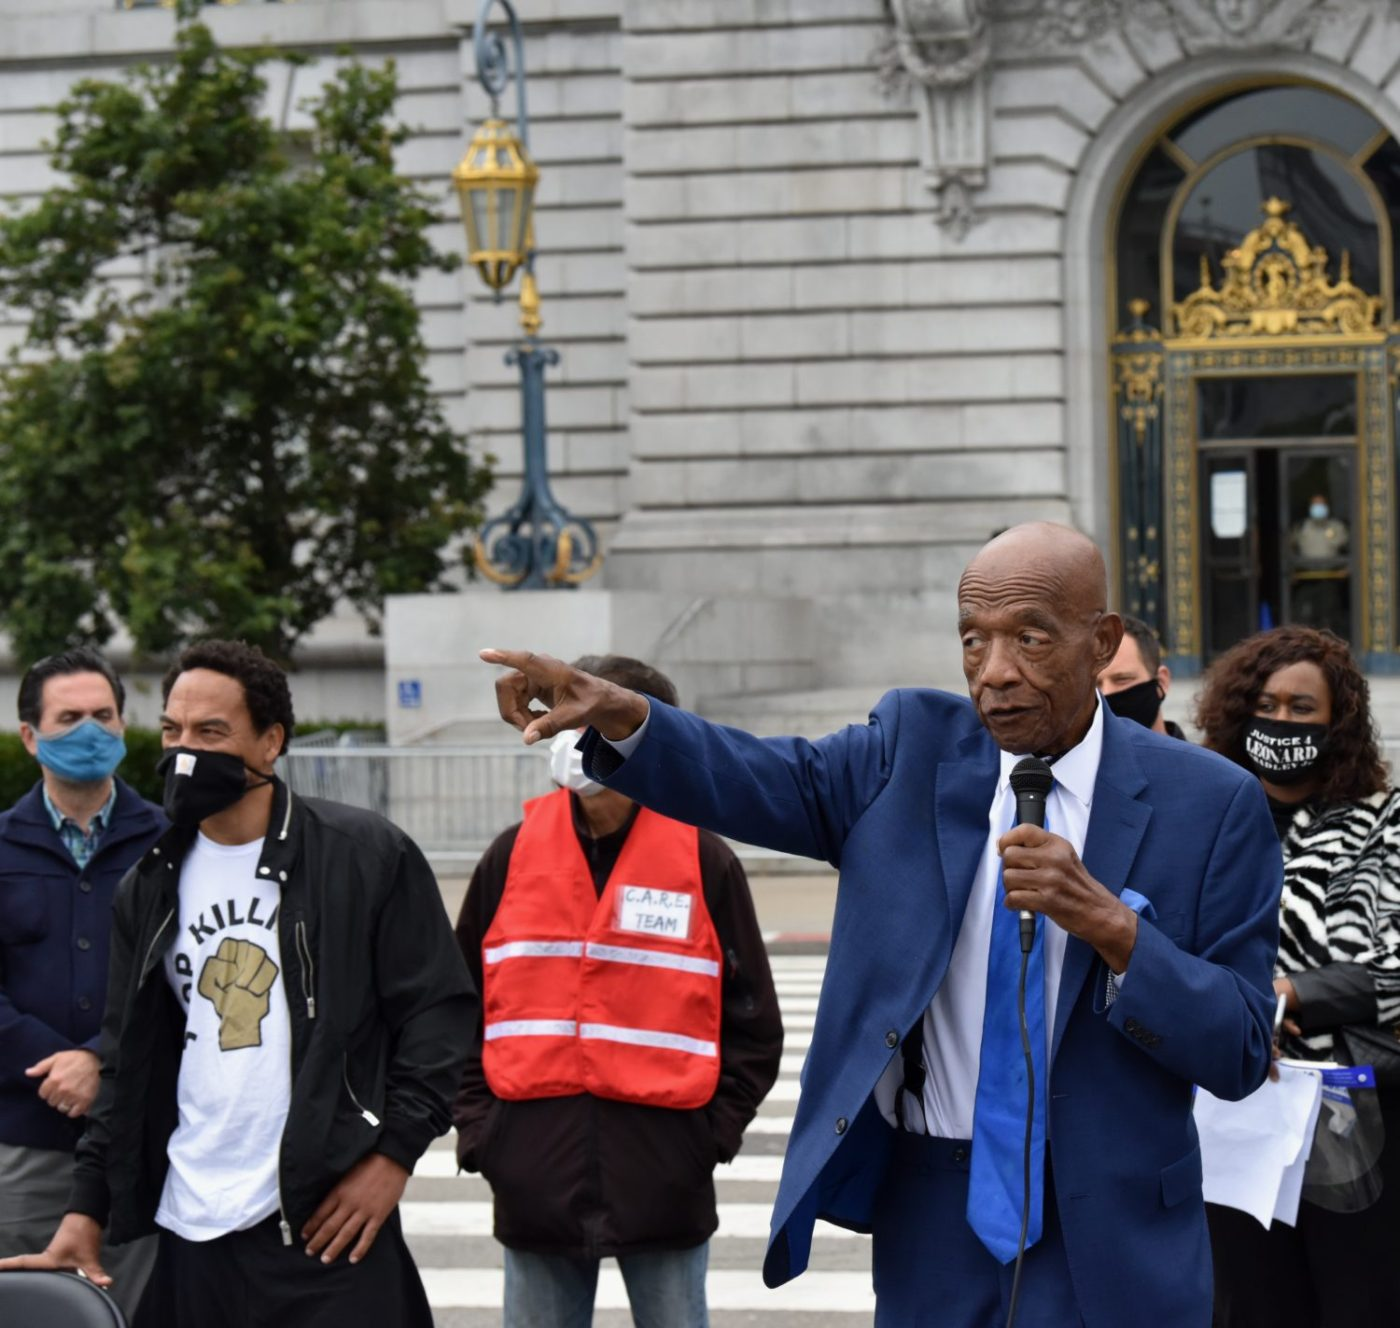 Invest-Black-Rally-supporting-Props-16-17-Charlie-Walker-speaking-at-SF-City-Hall-072420-by-Johnnie-Burrell-1-1400x1328, Invest Black – when government is us, Local News & Views